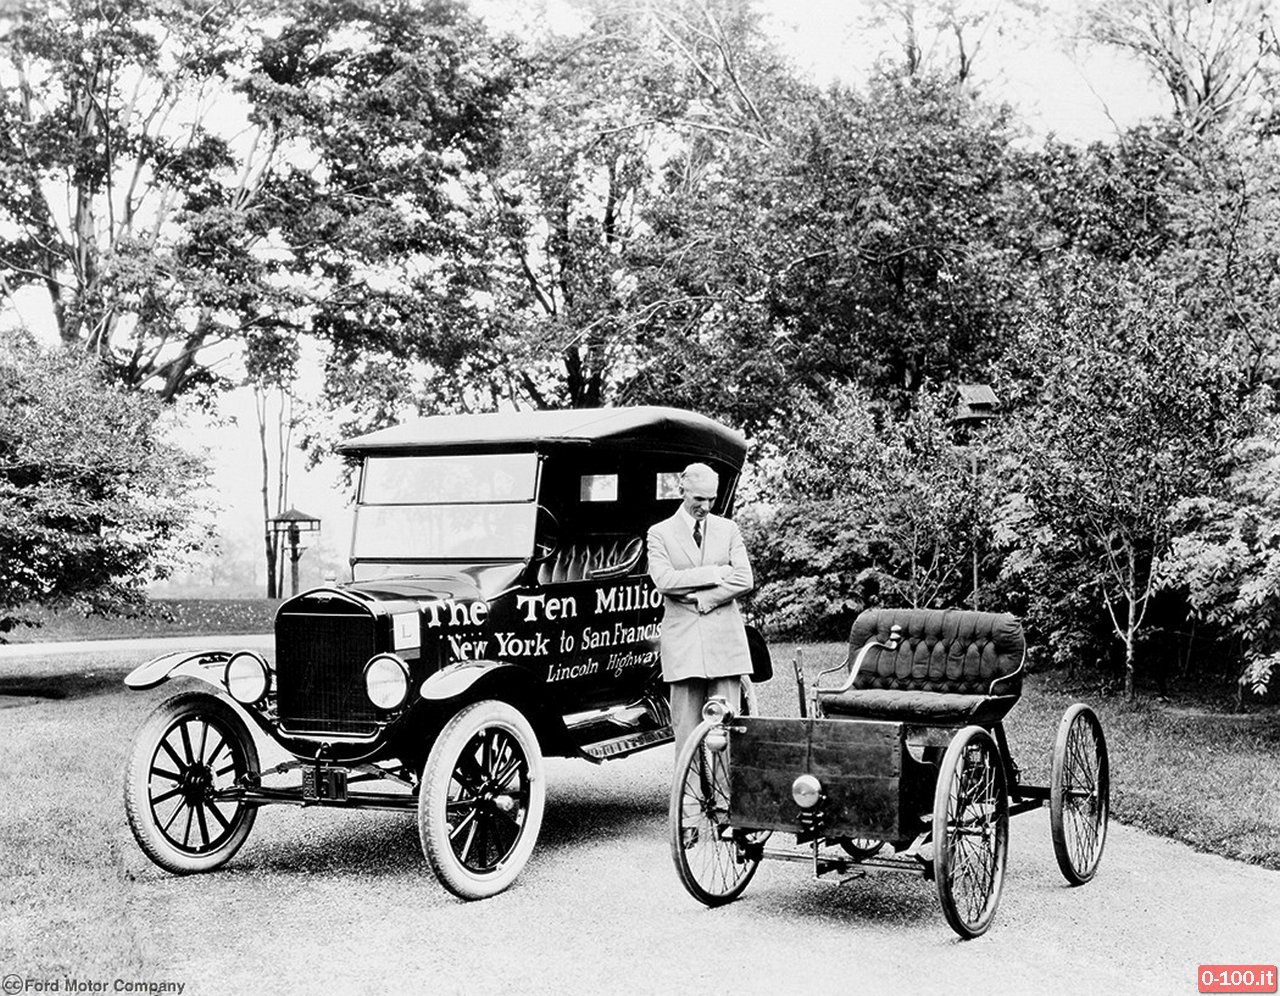 1924 Ford Model T 10 Millionth Car - Quadricycle